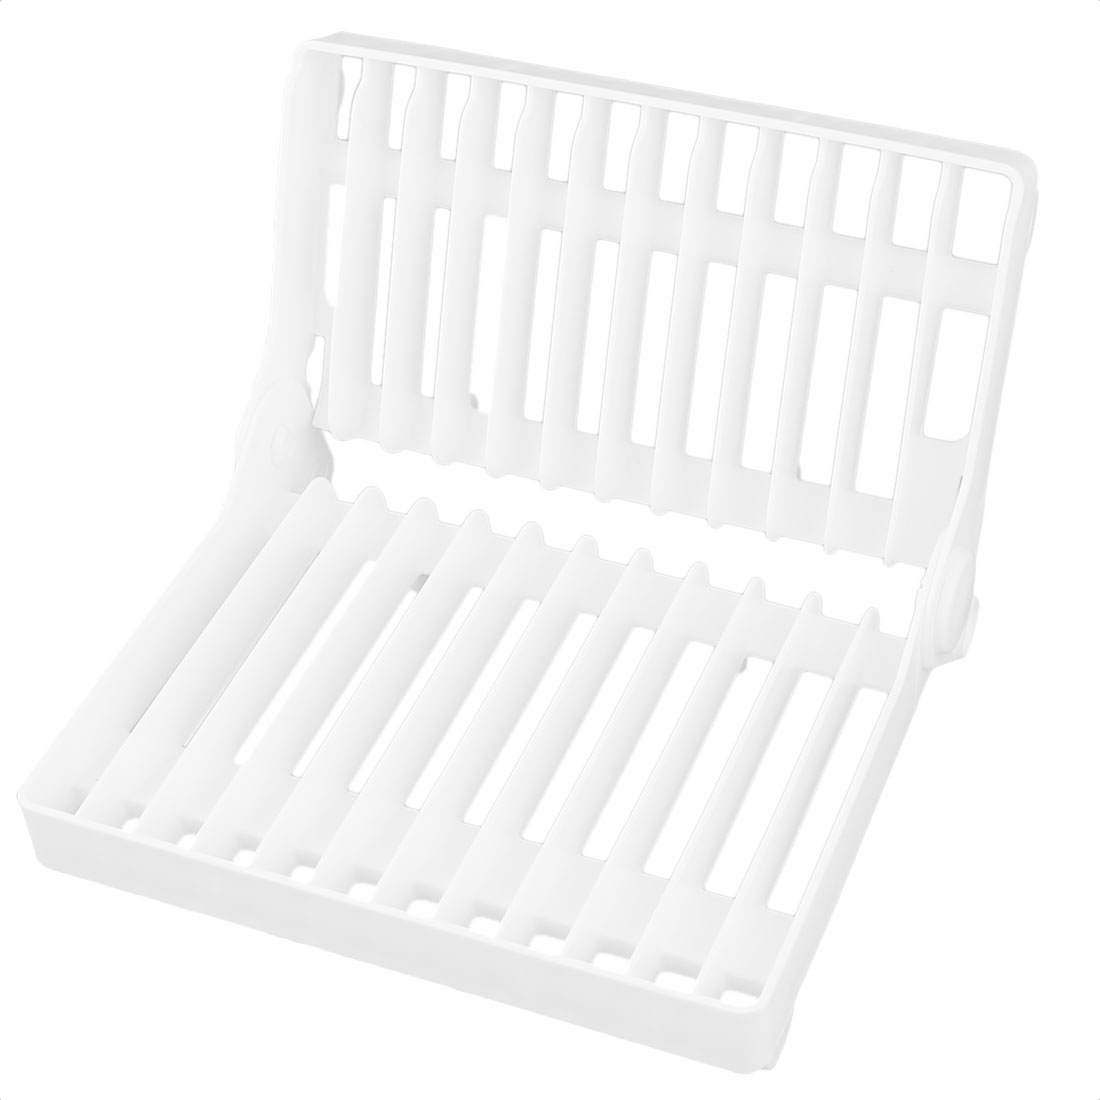 Kitchen Dish Cup Drying Floding Rack Drainer Dryer Tray Cutlery Holder Organizer Storage